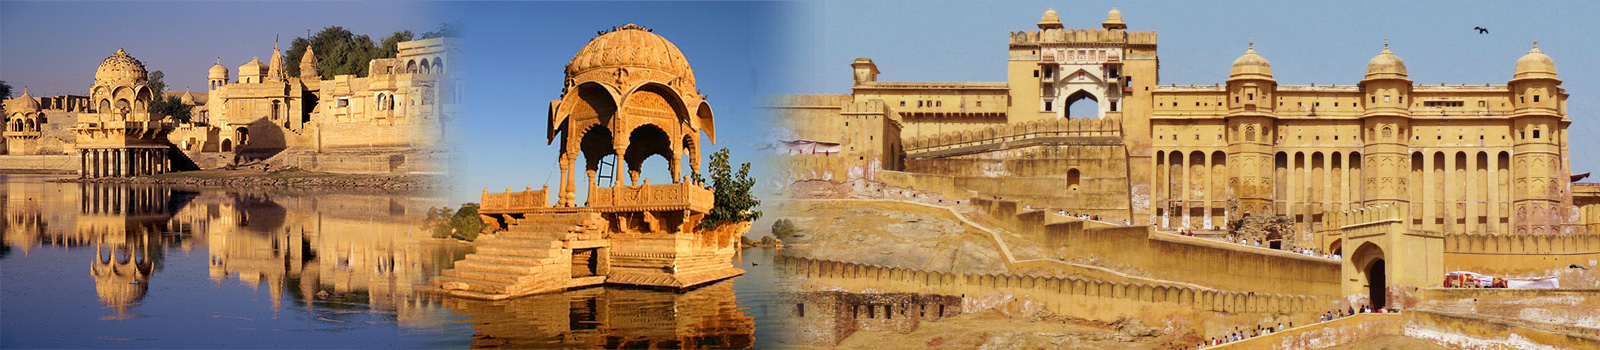 Rajasthan holiday package